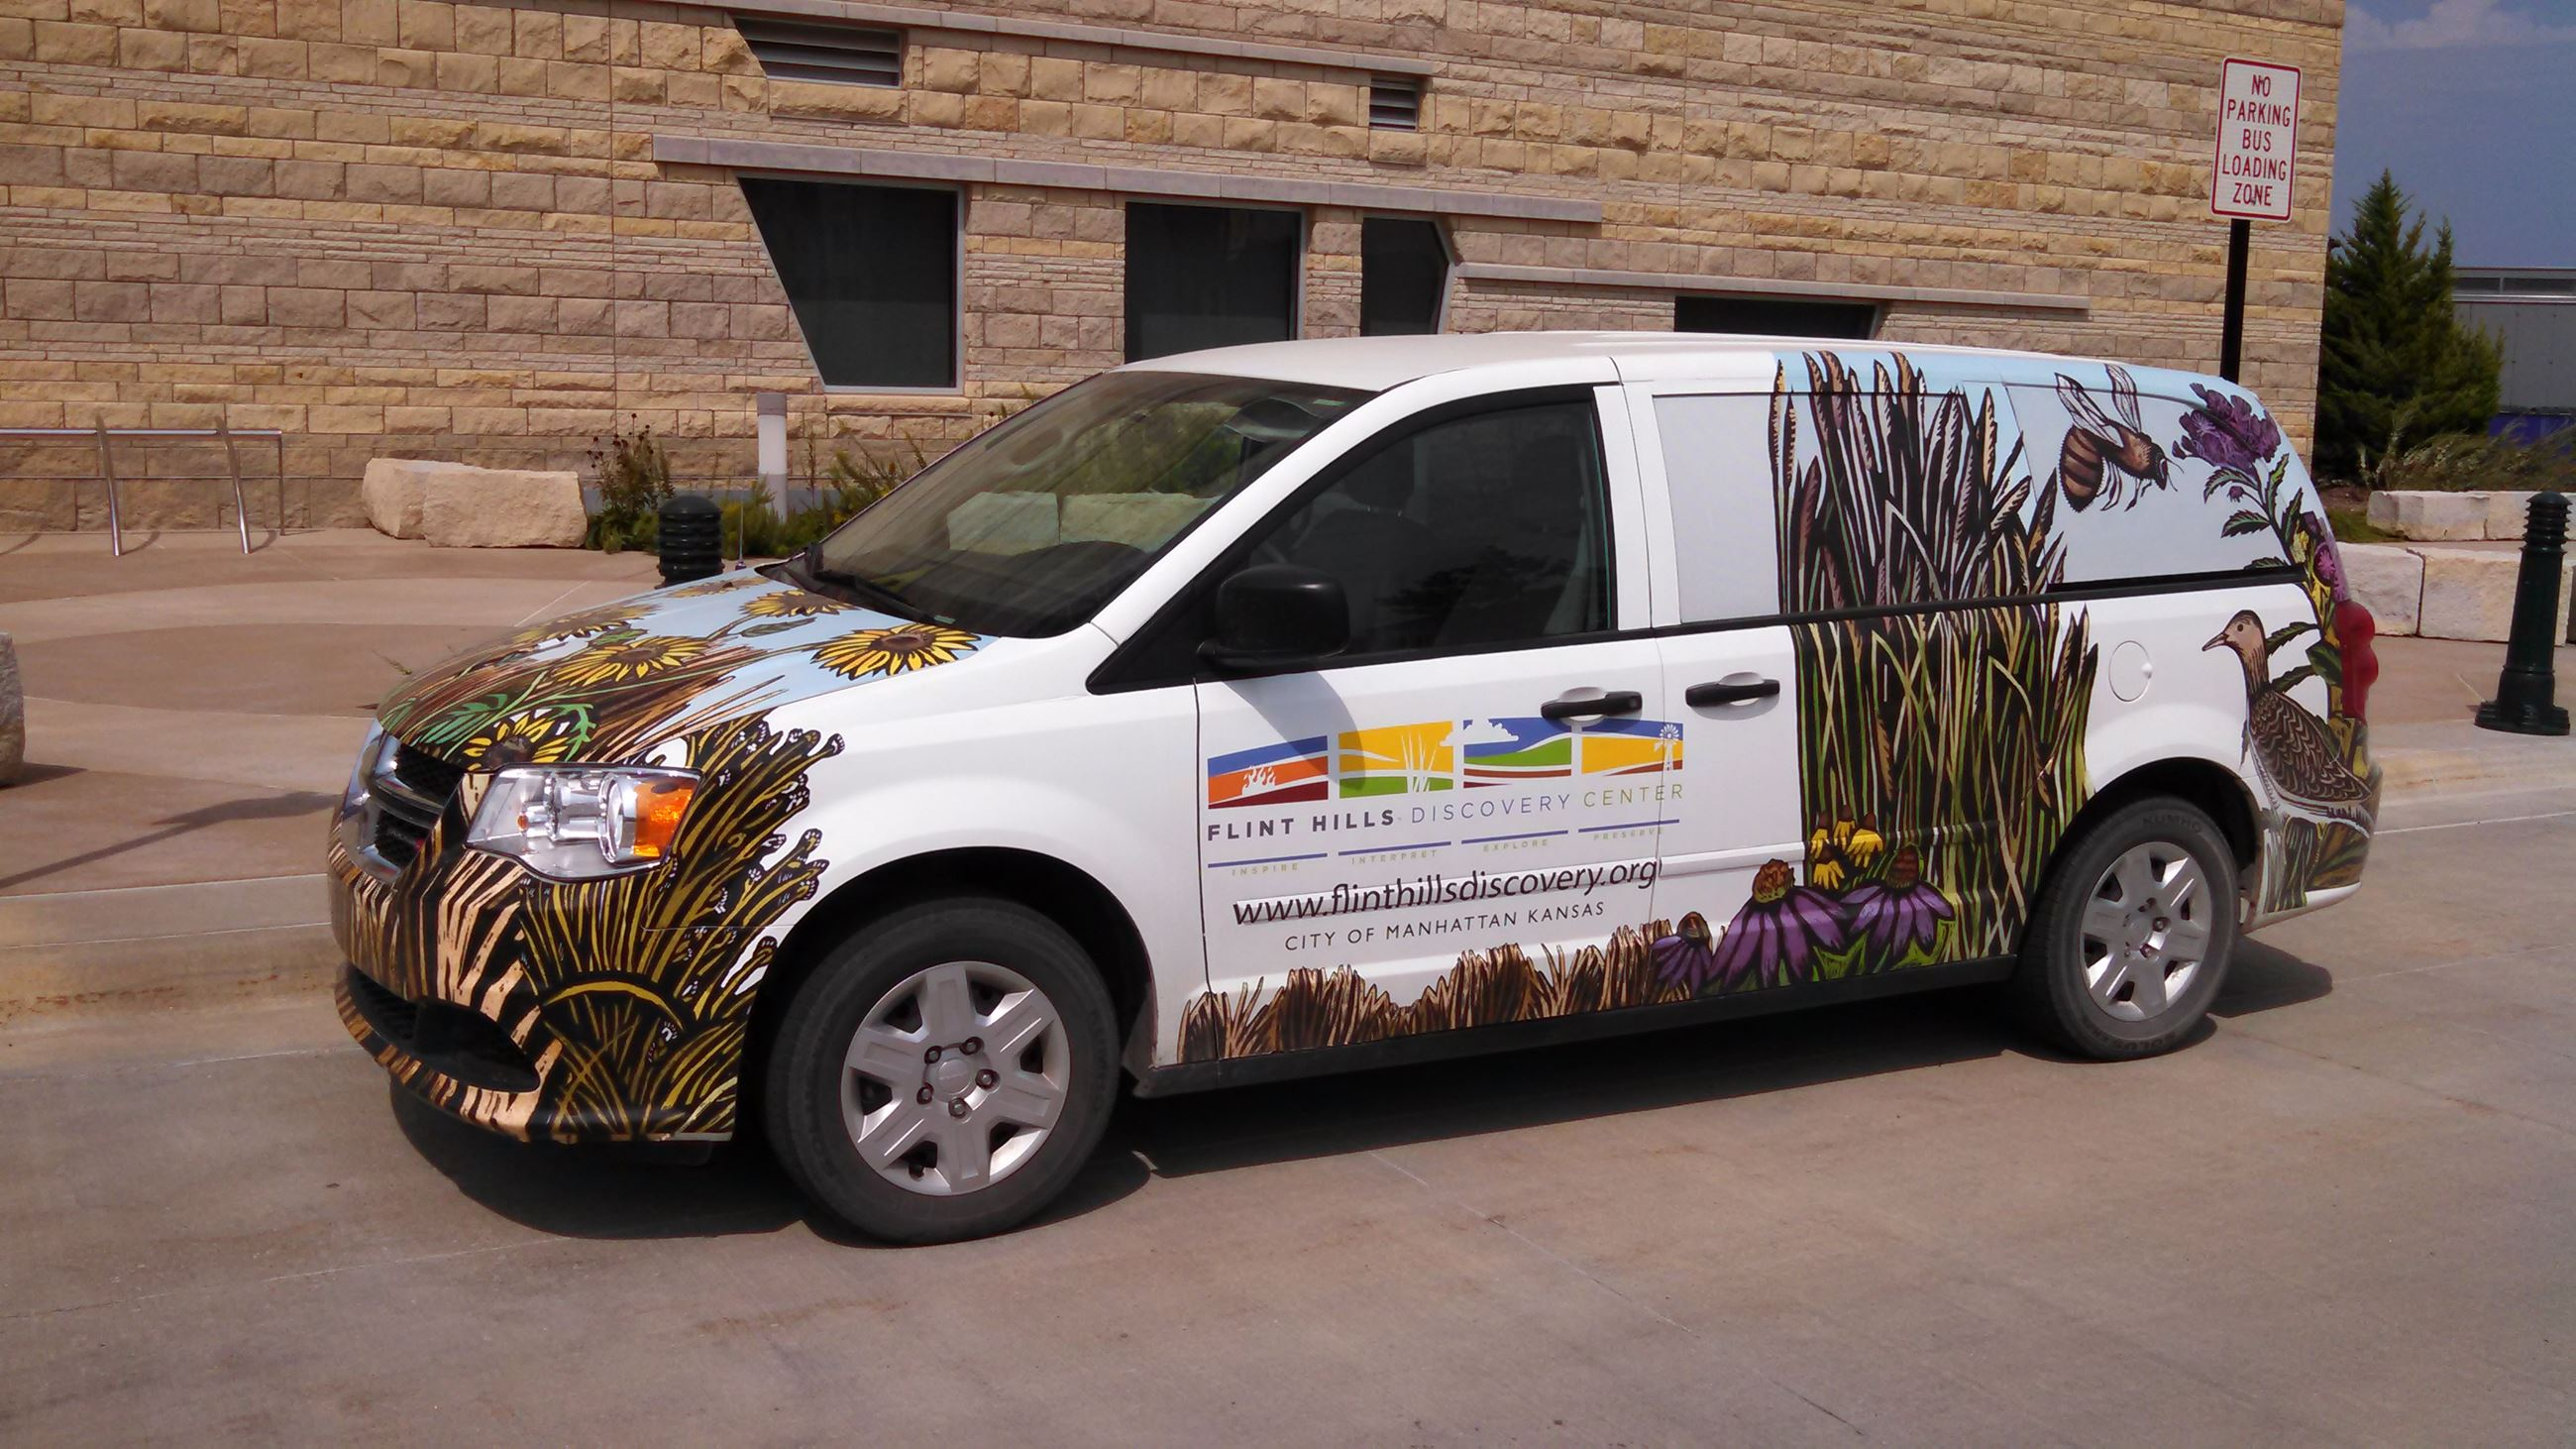 A van decorated with images of Flint Hills native grass